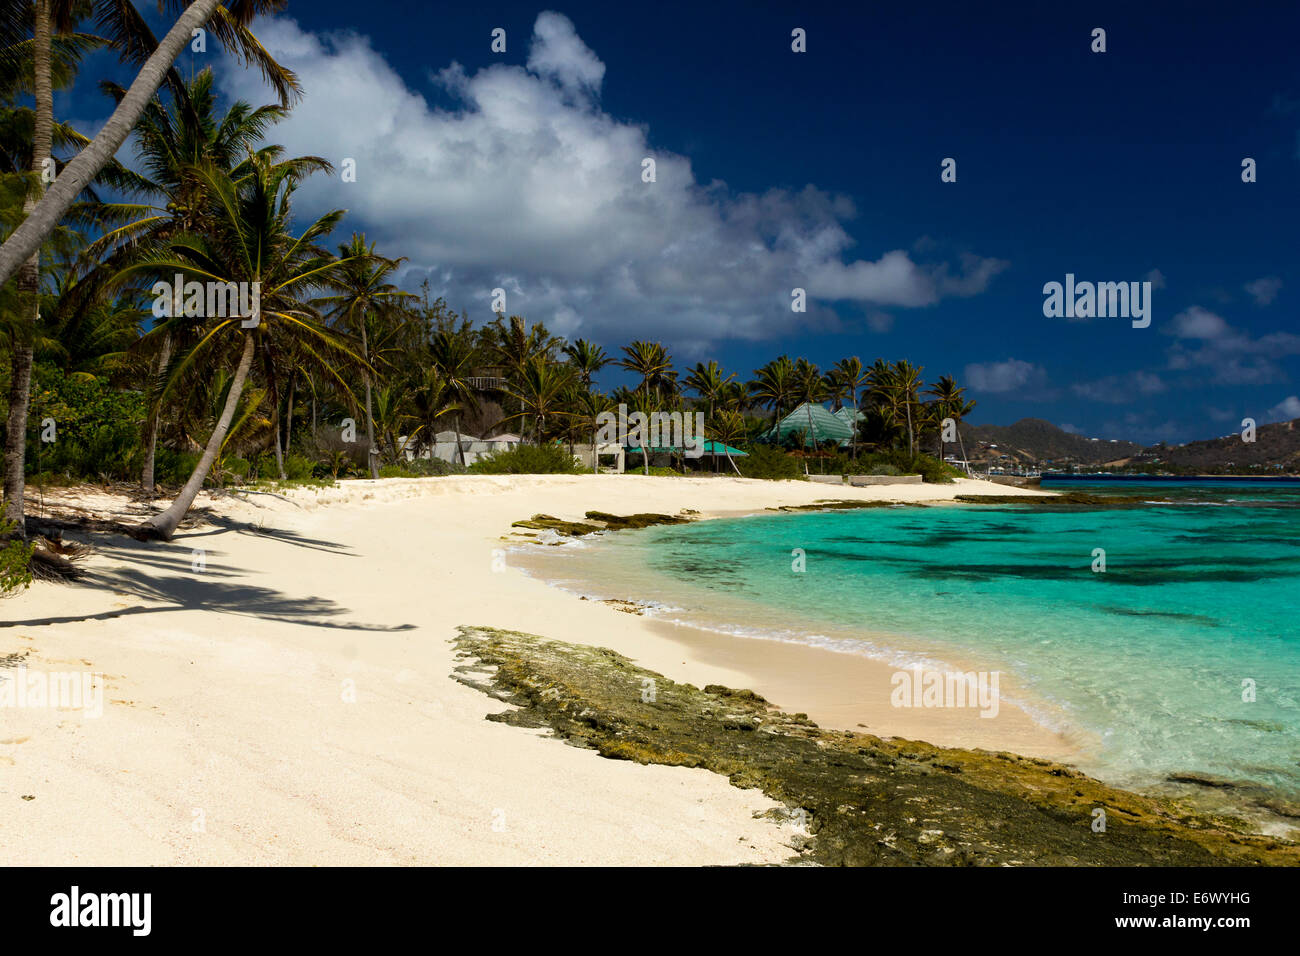 Caribbean Beach Scenes: Tranquil Caribbean Beach Fringed With Palm Trees. Vivid